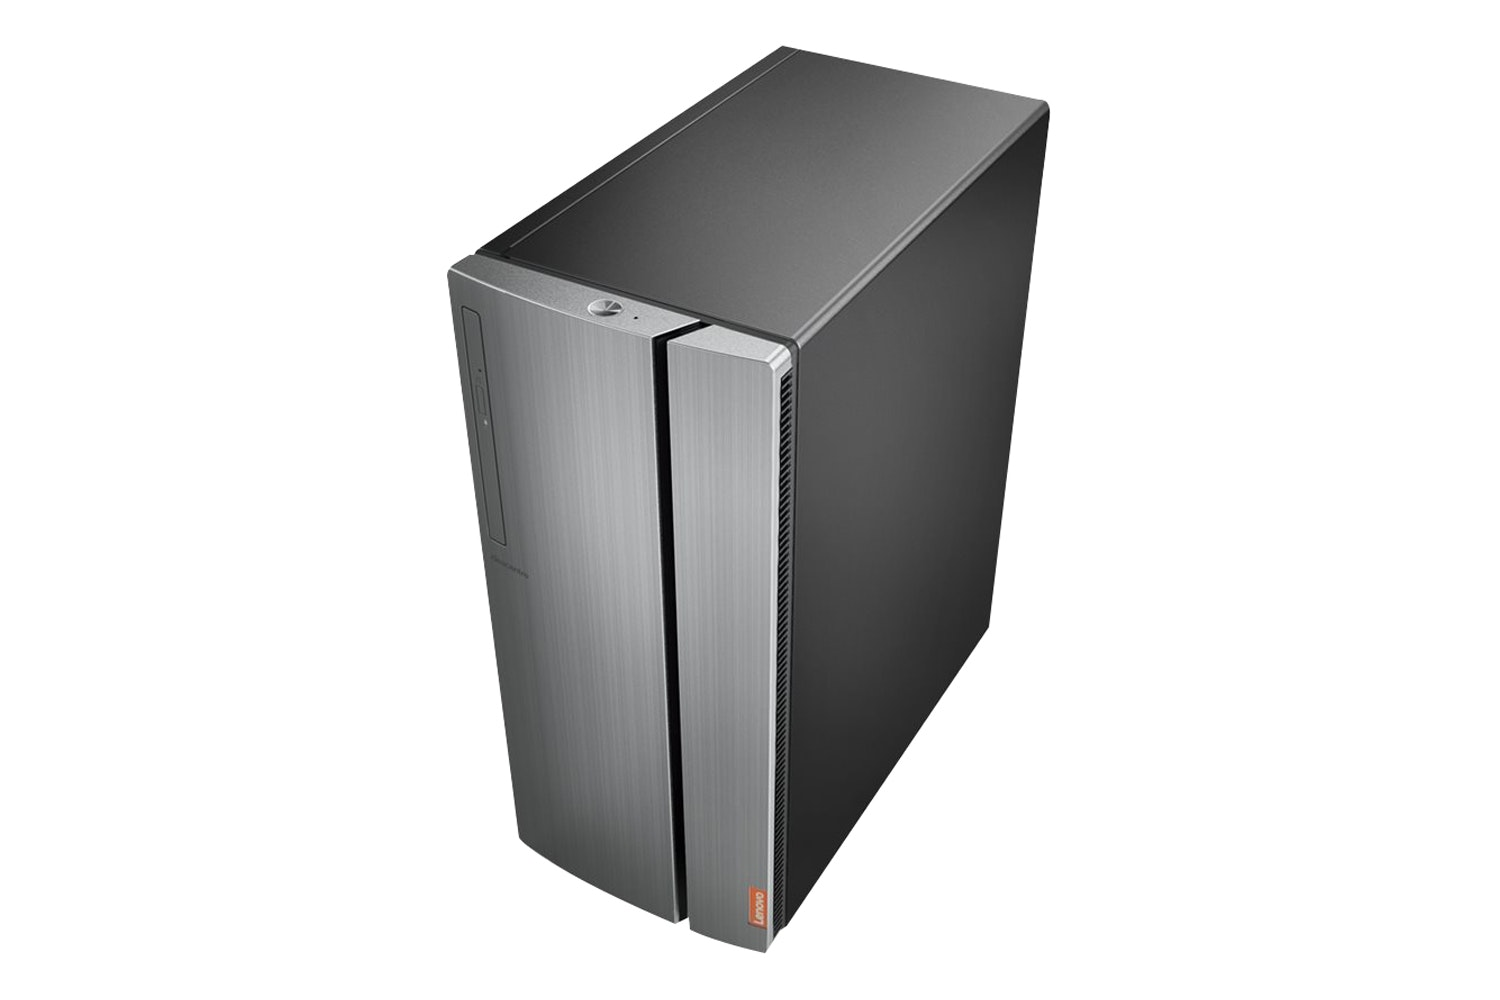 Lenovo IdeaCentre 720 AMD Ryzen 7 1700 | 8GB | 2TB